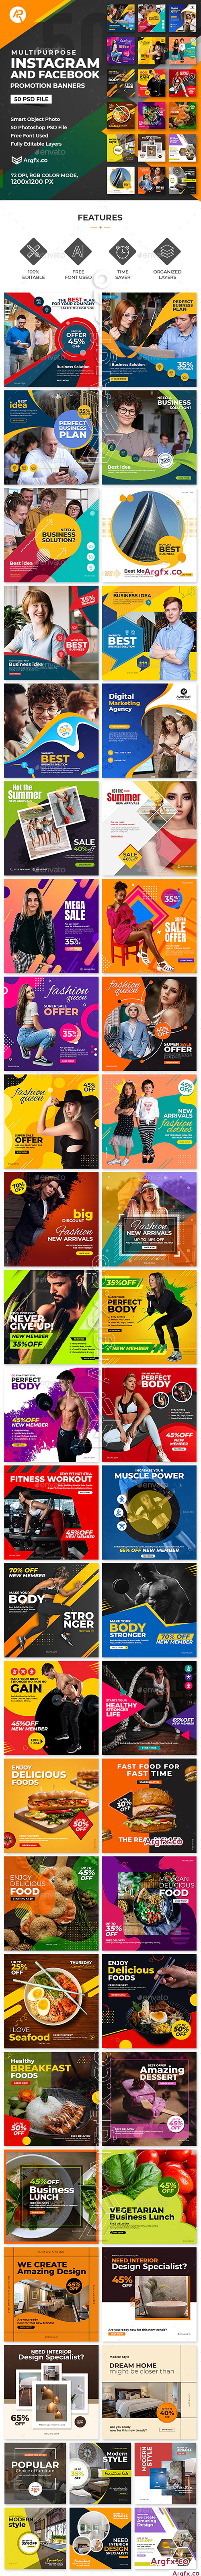 GraphicRiver - 50-Instagram & Facebook Banners 25636114